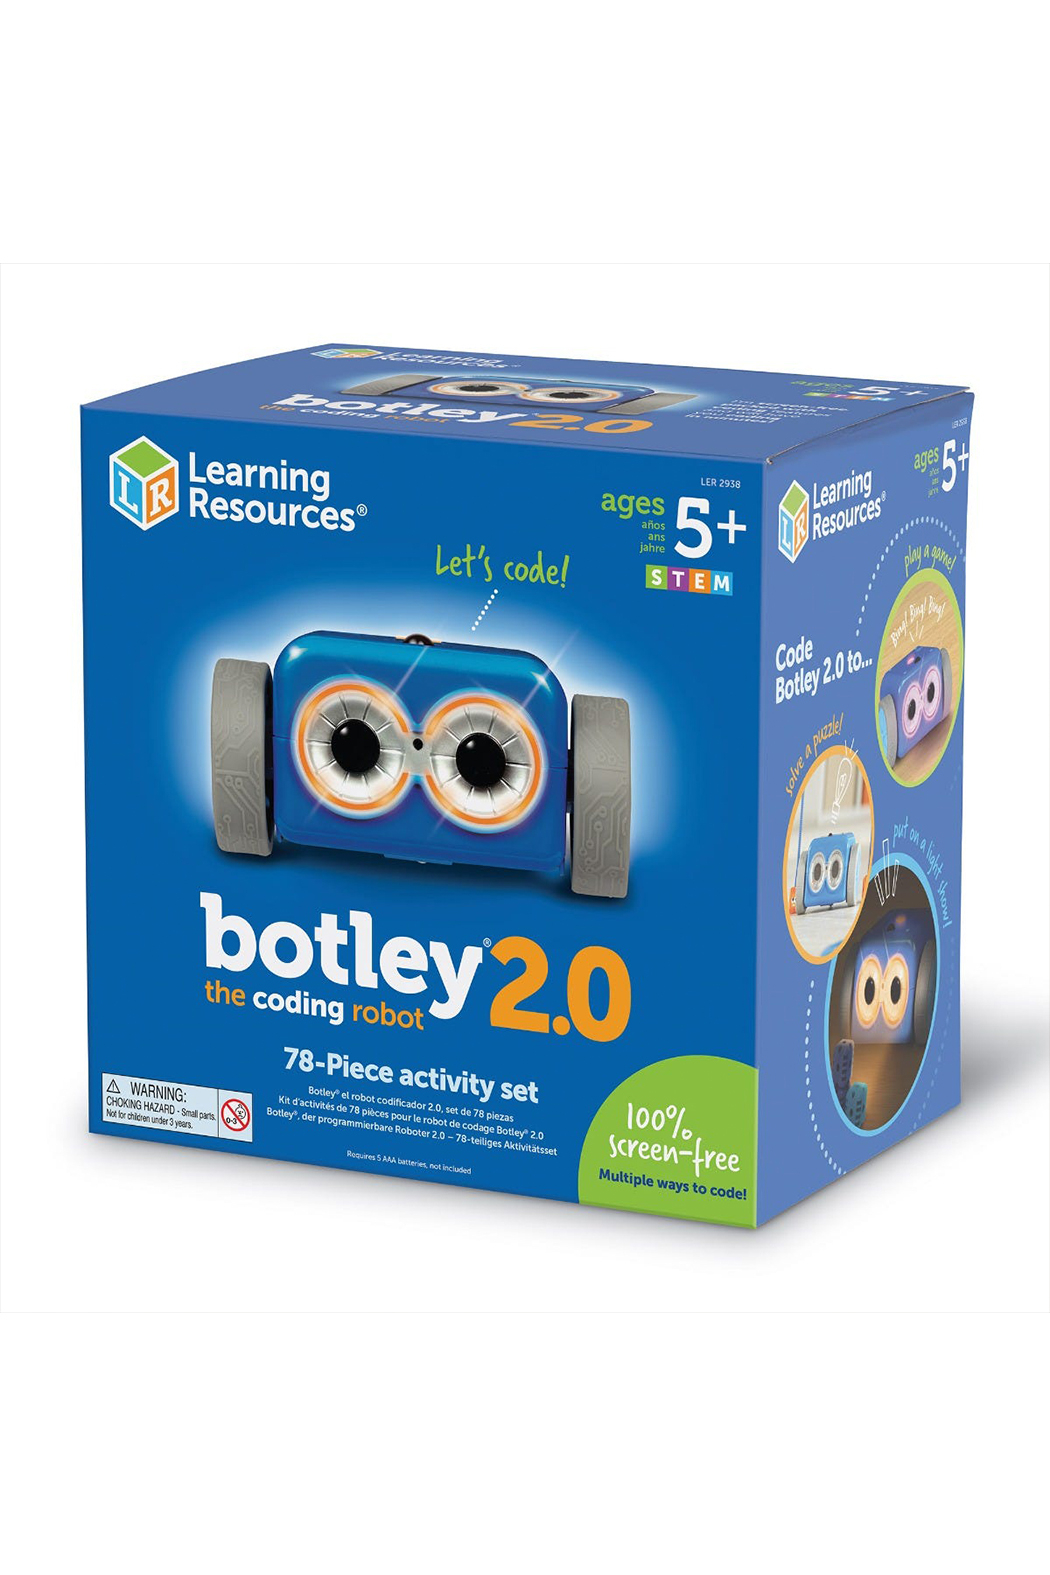 Learning Resources Botley 2.0: The Coding Robot Activity Set - Main Image